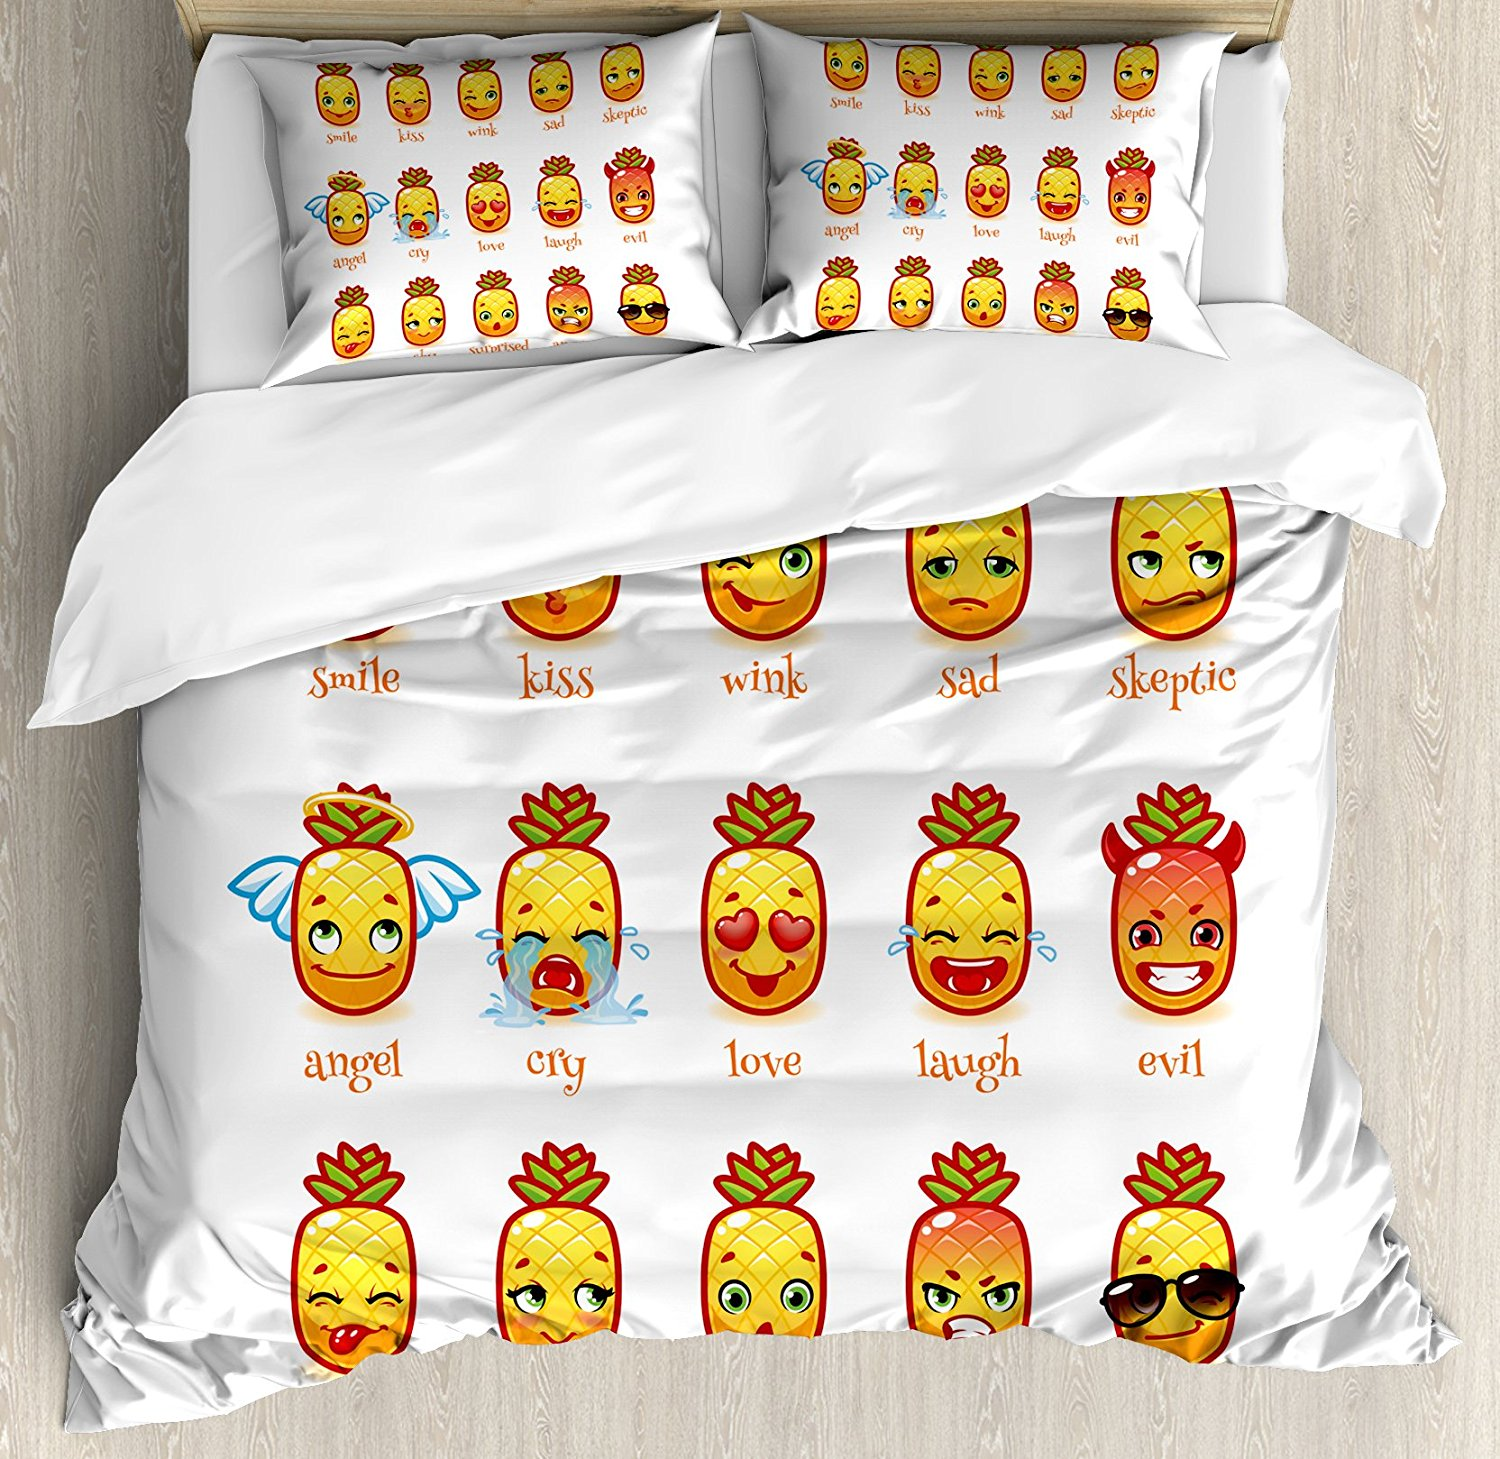 Emoji Duvet Cover Set King Size Funny Pineapples with Faces